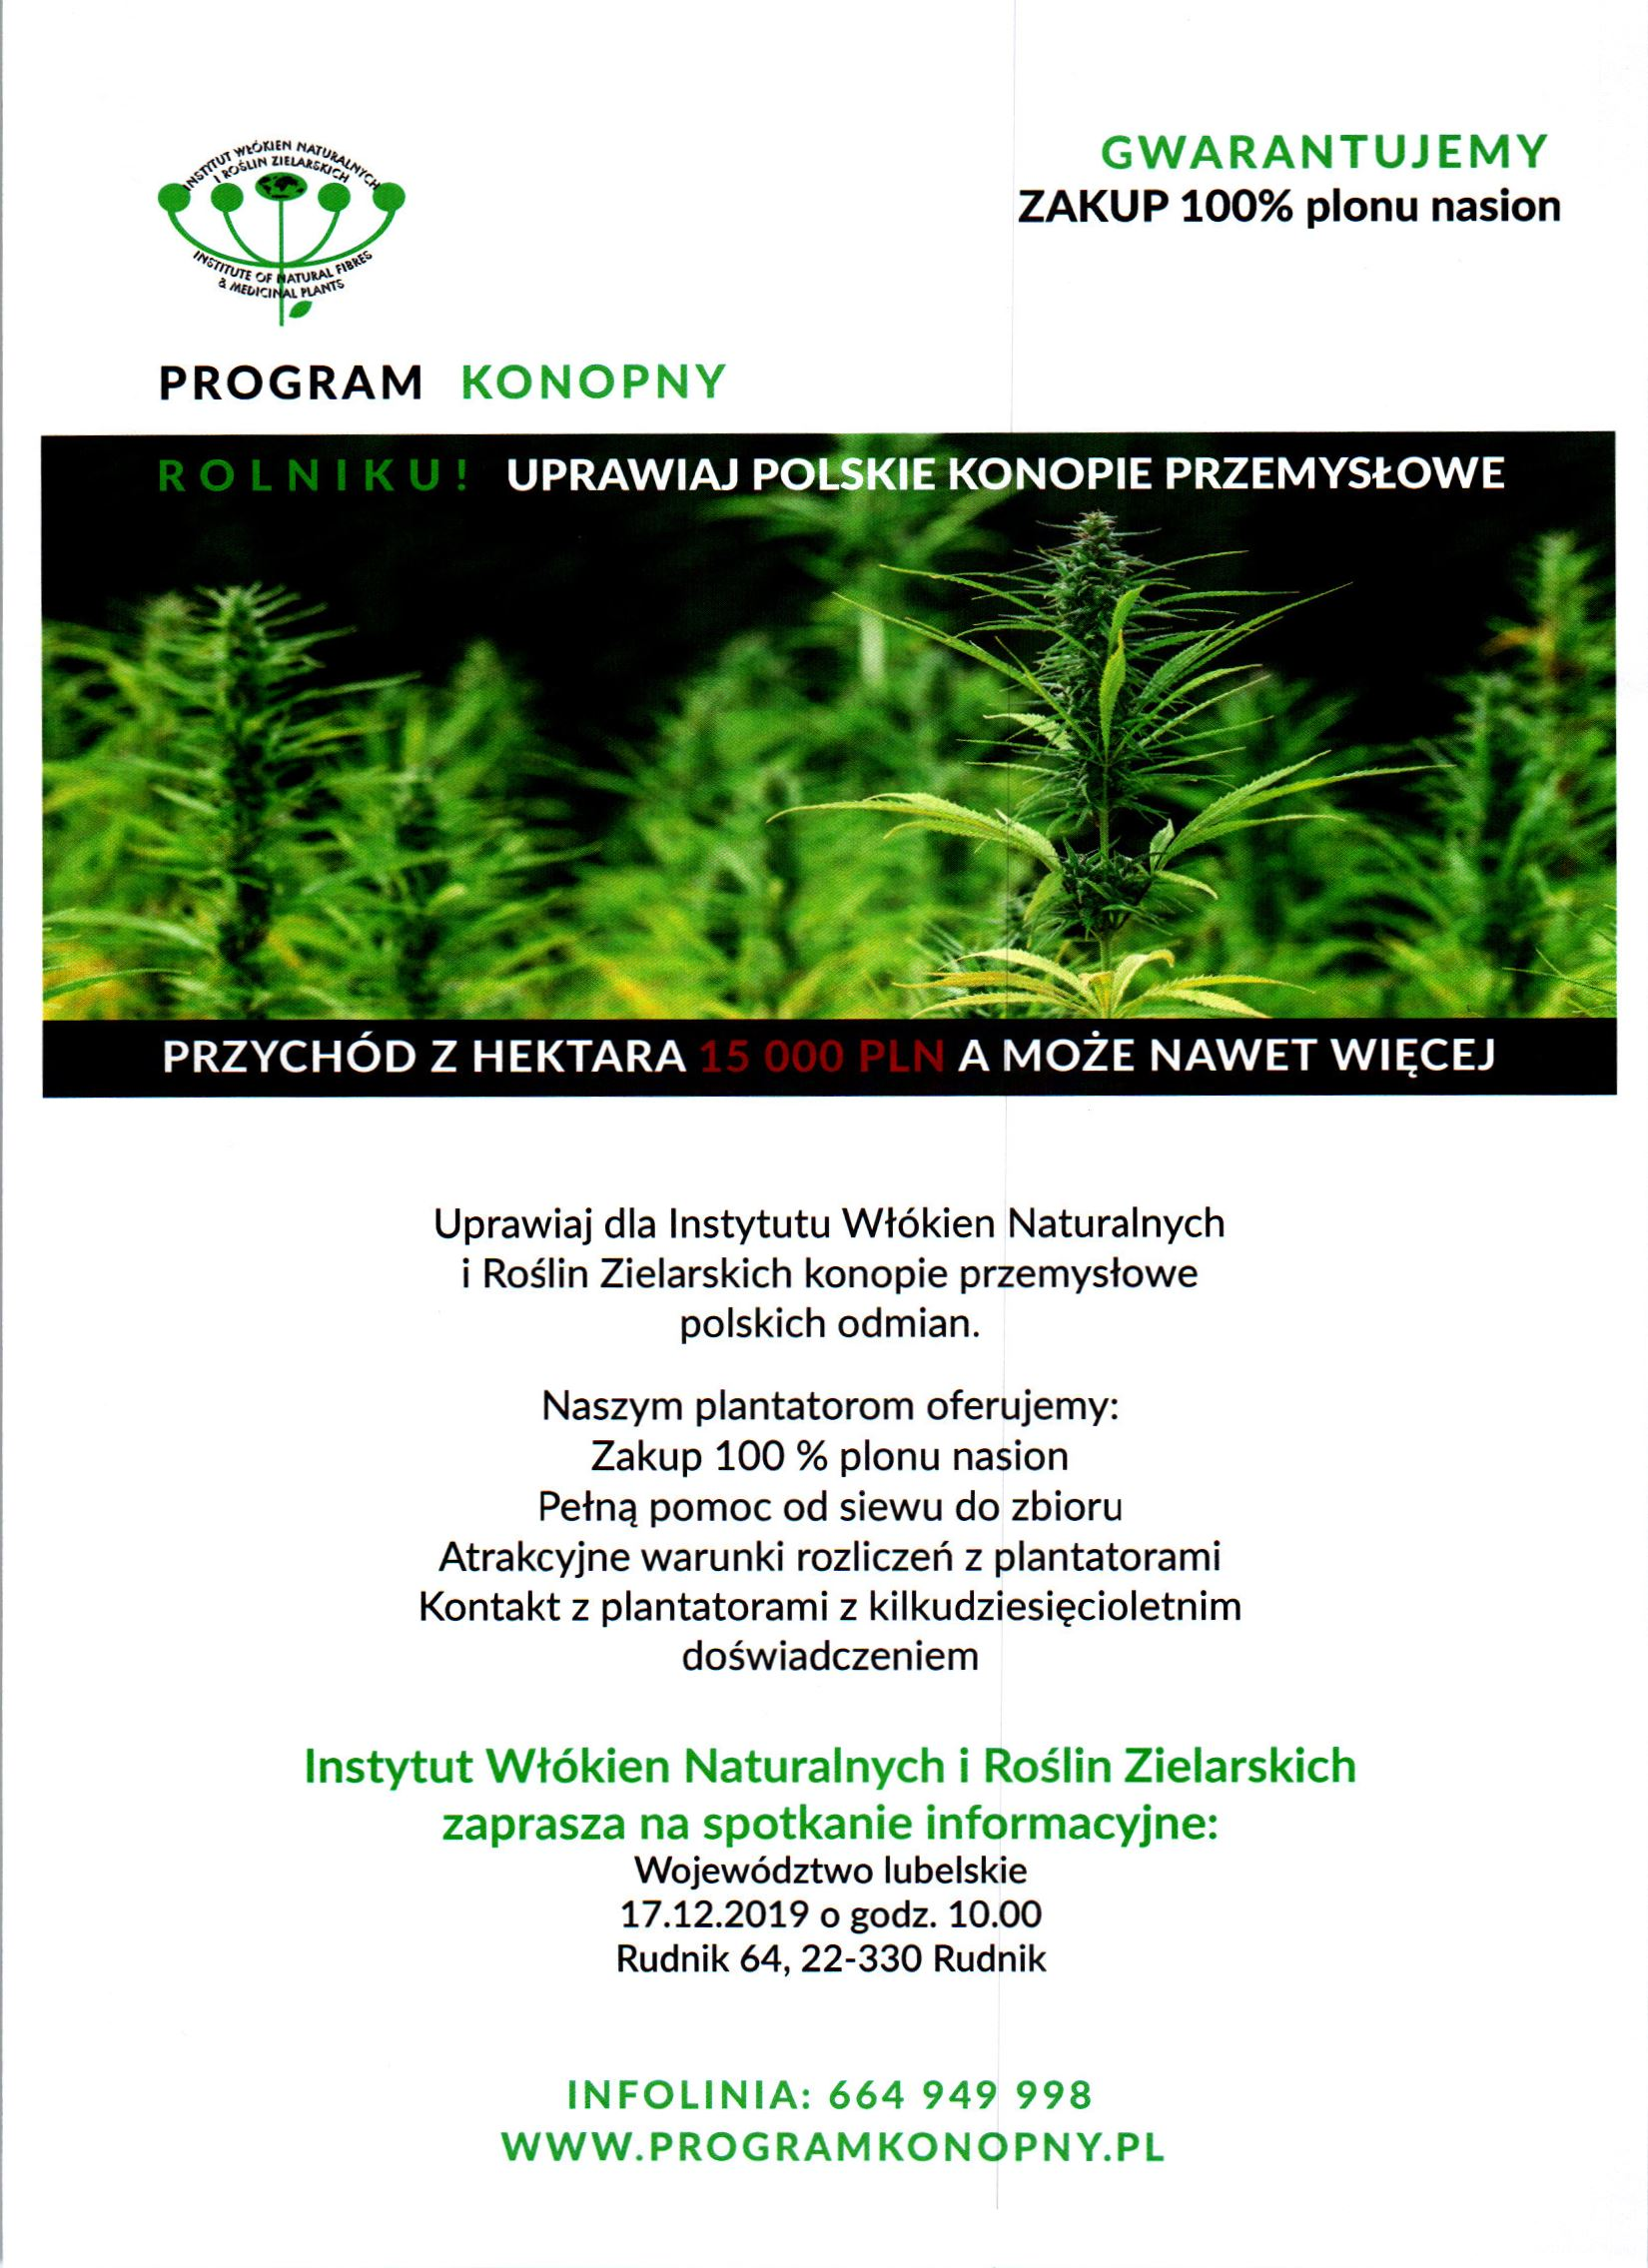 PROGRAM KONOPNY